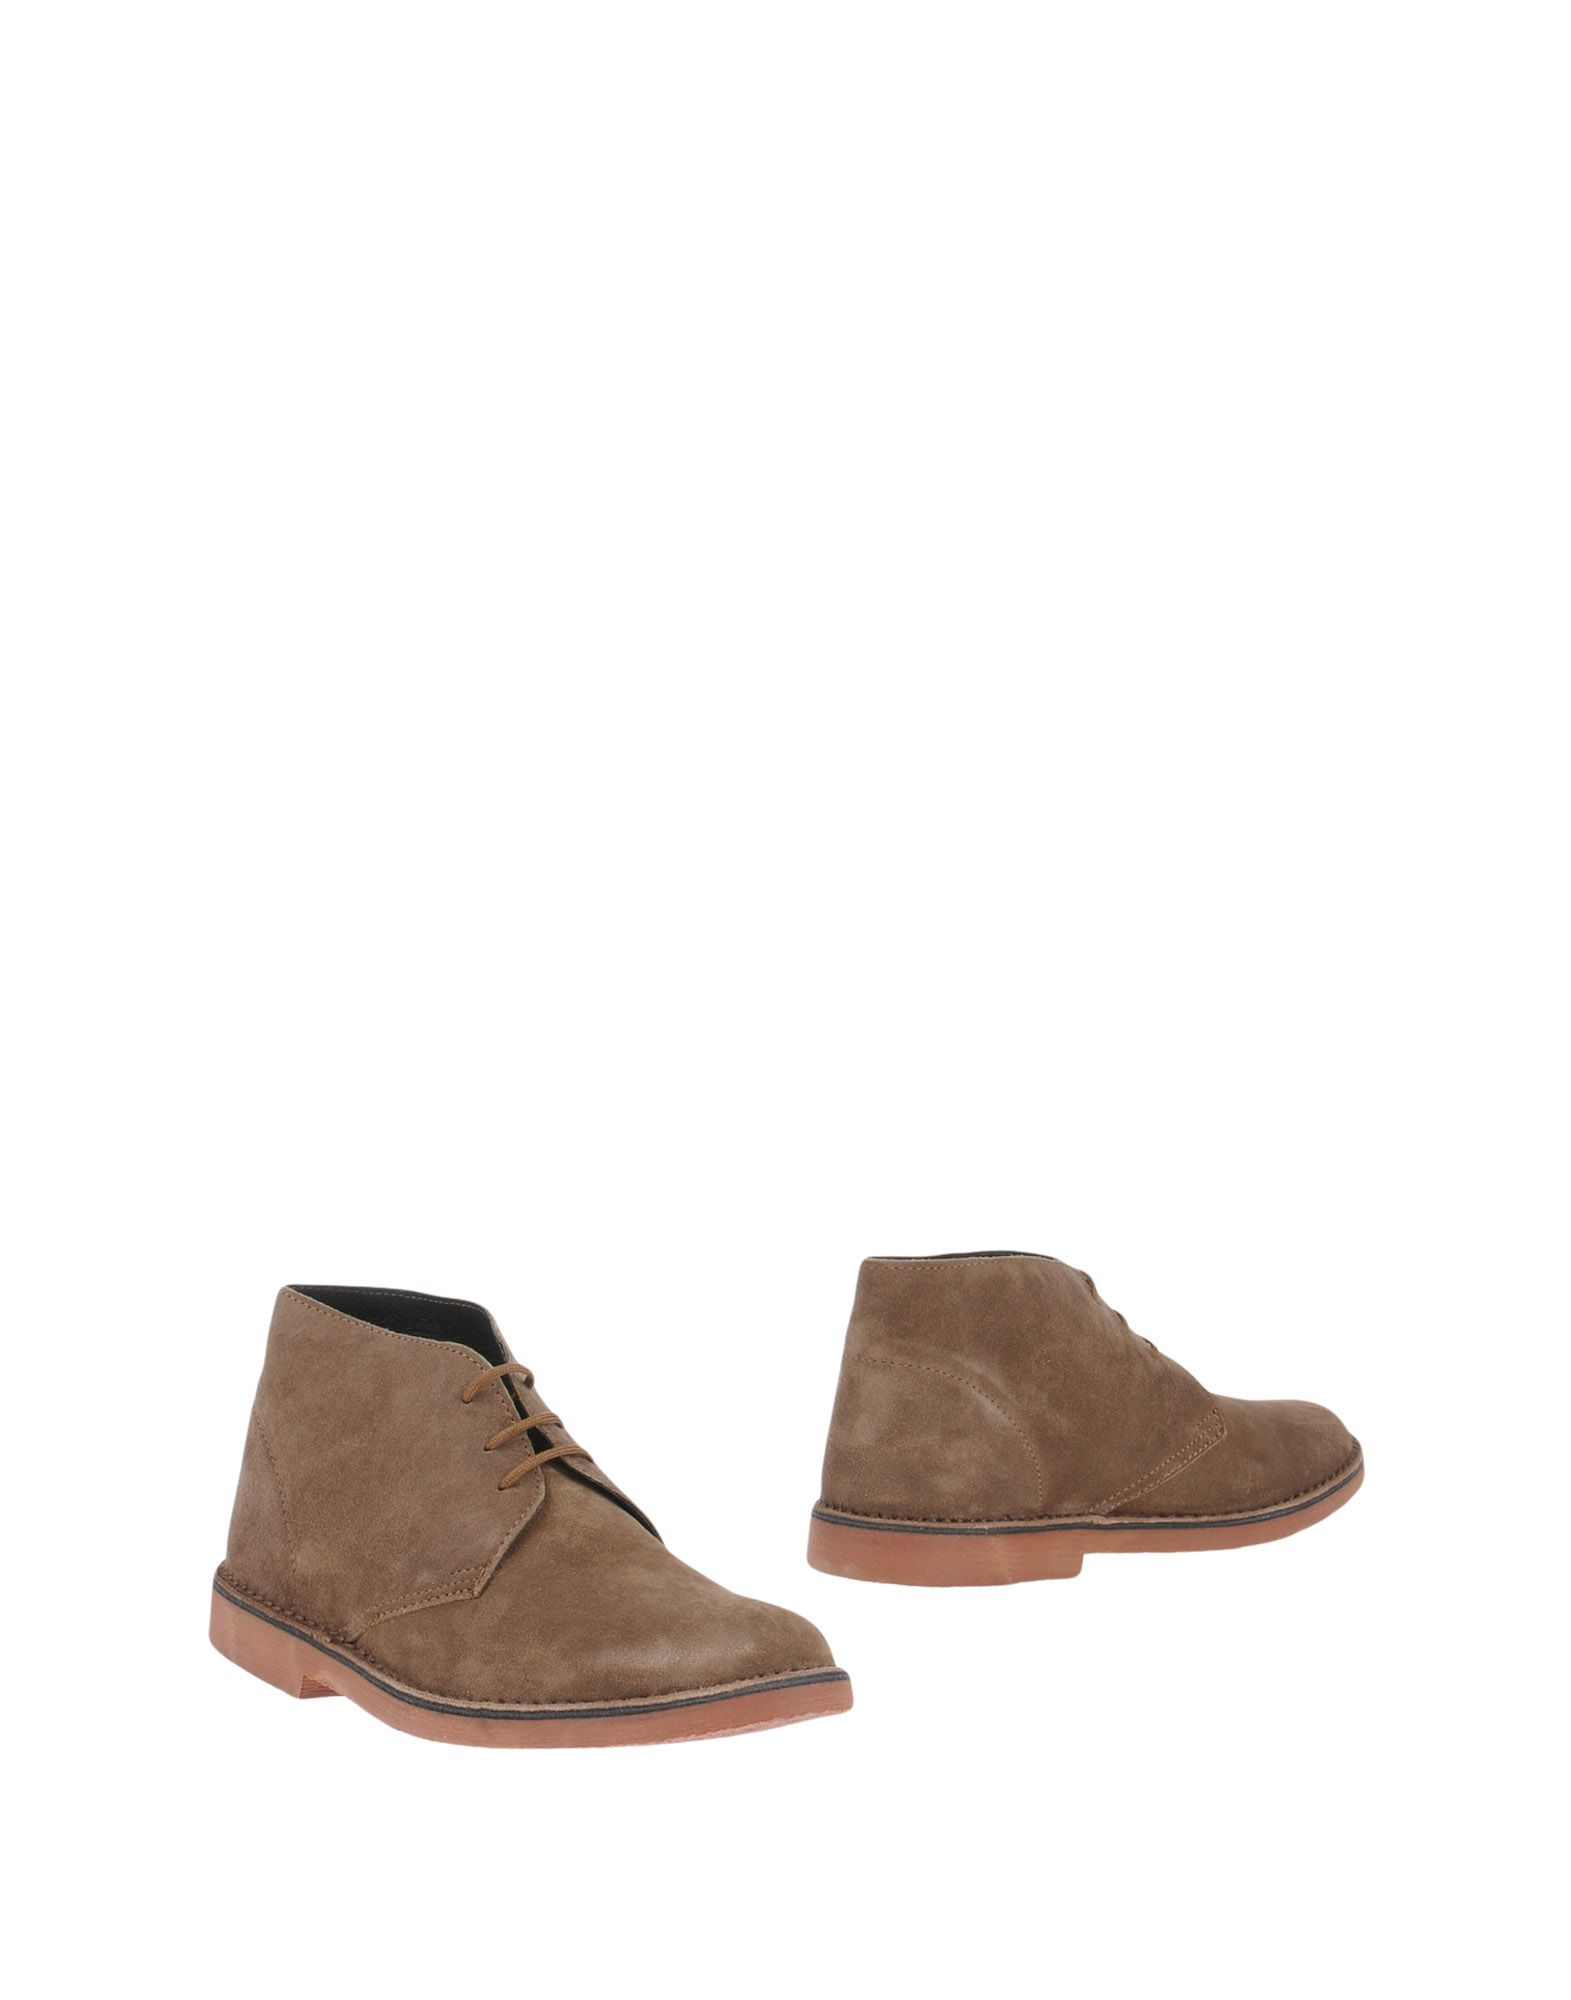 Bottine Brawns Homme - Bottines Brawns sur